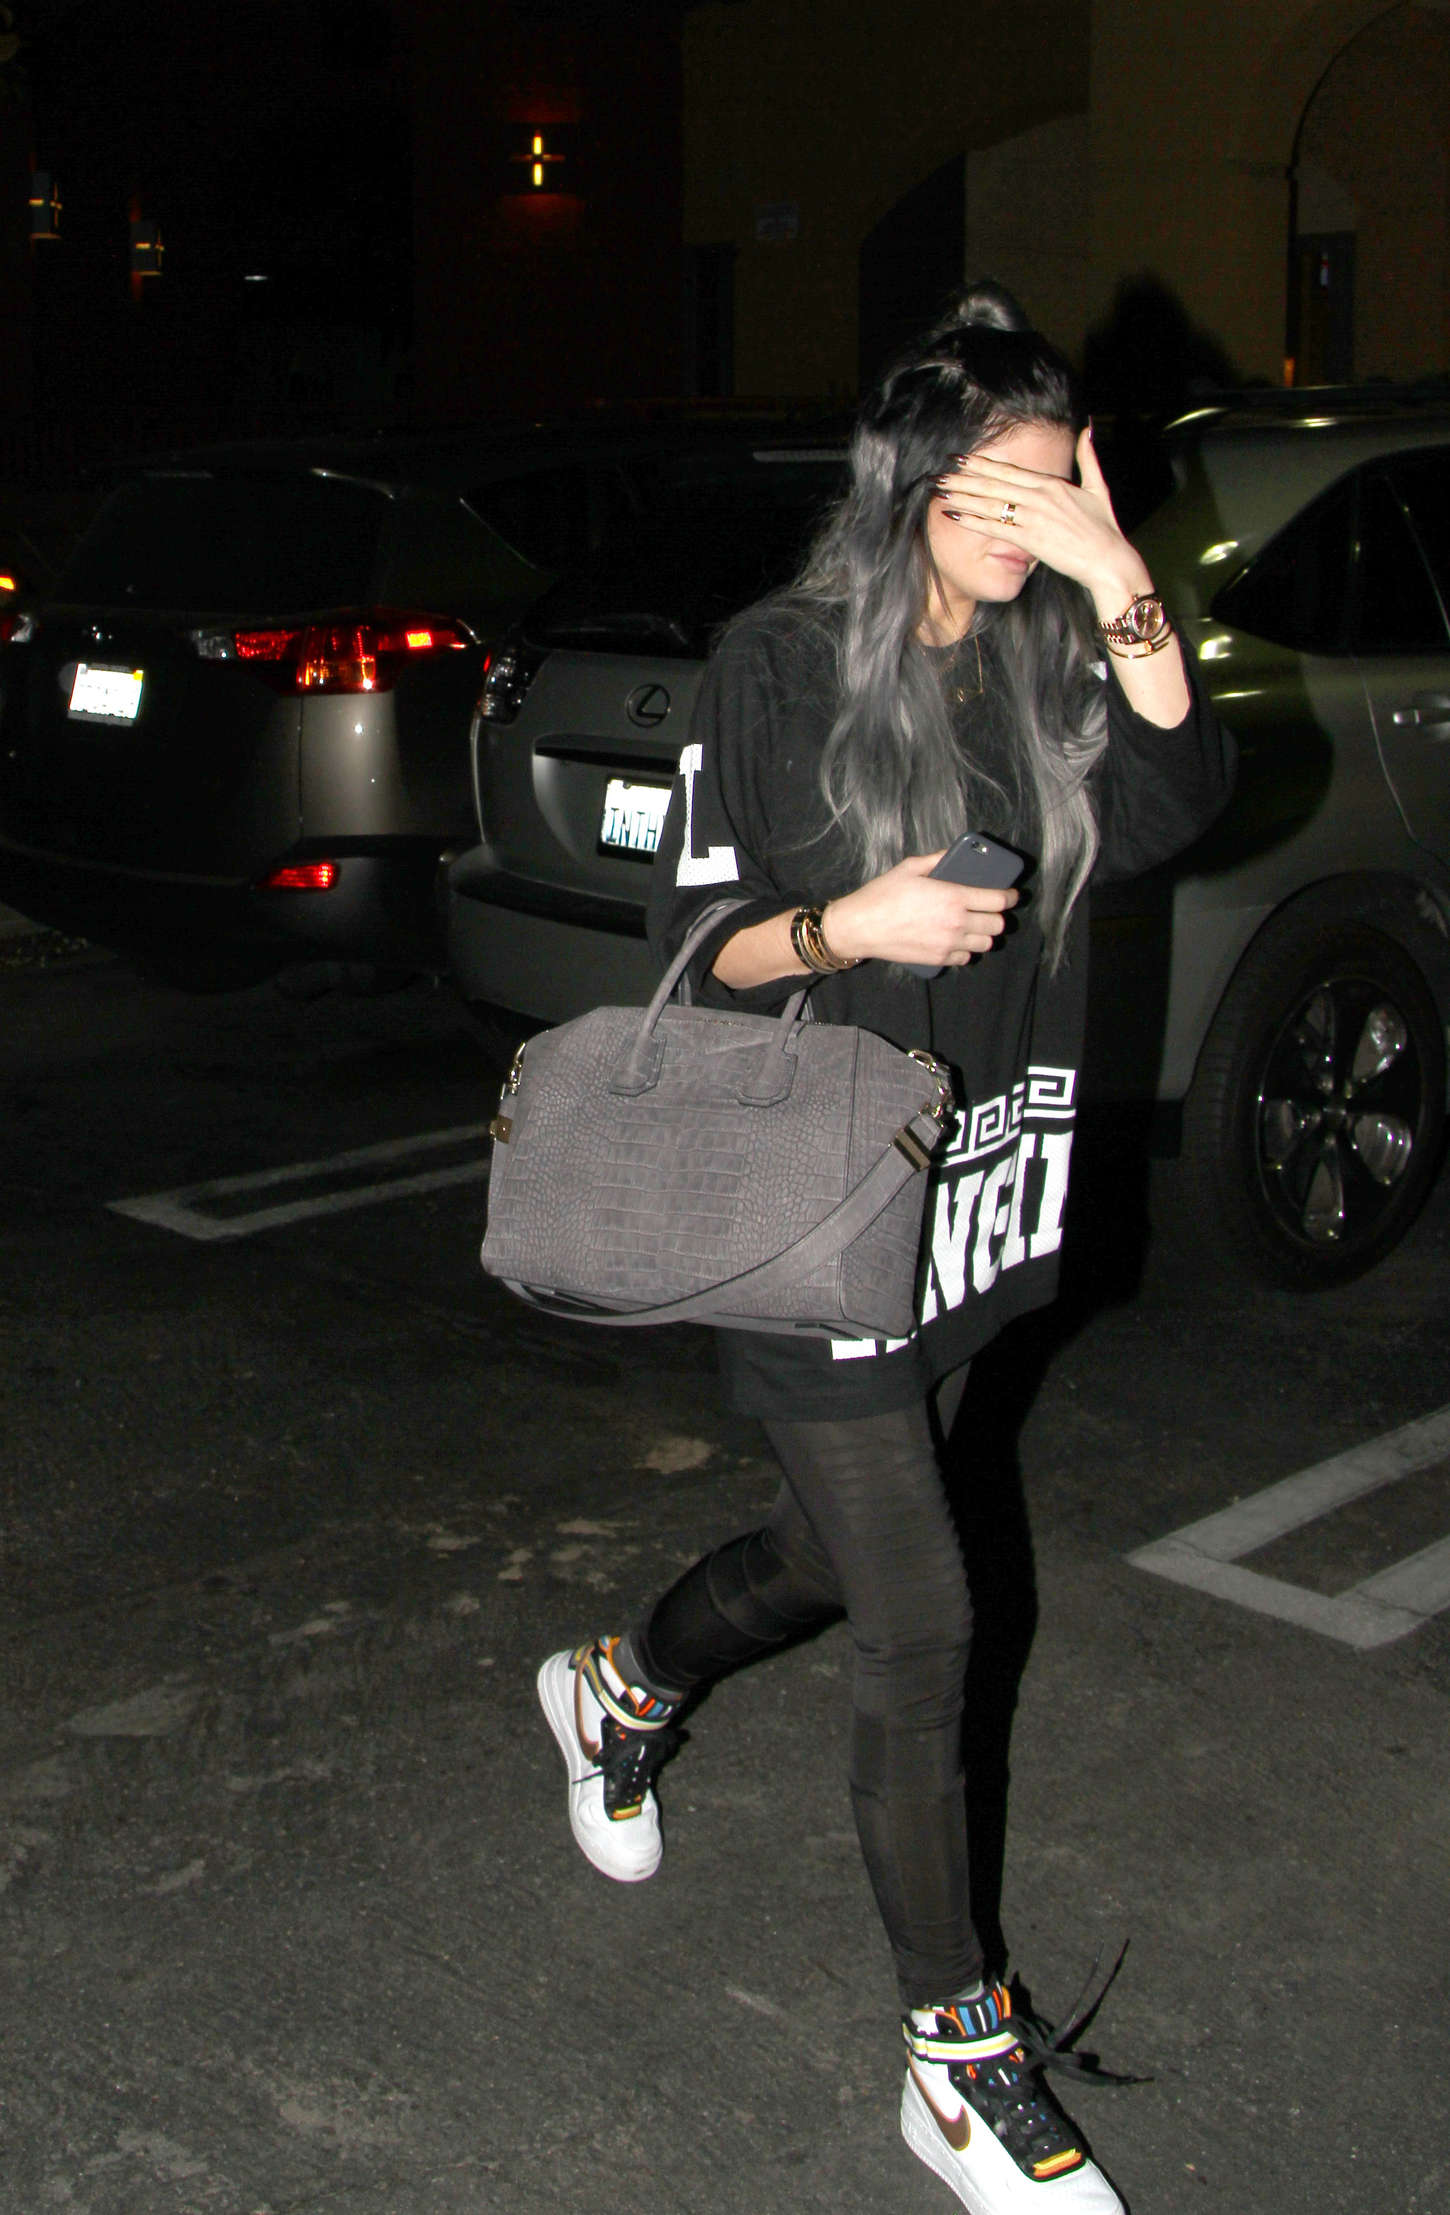 Kylie Jenner in Spandex Leaving the Regency Movie Theatre in Agoura Hills